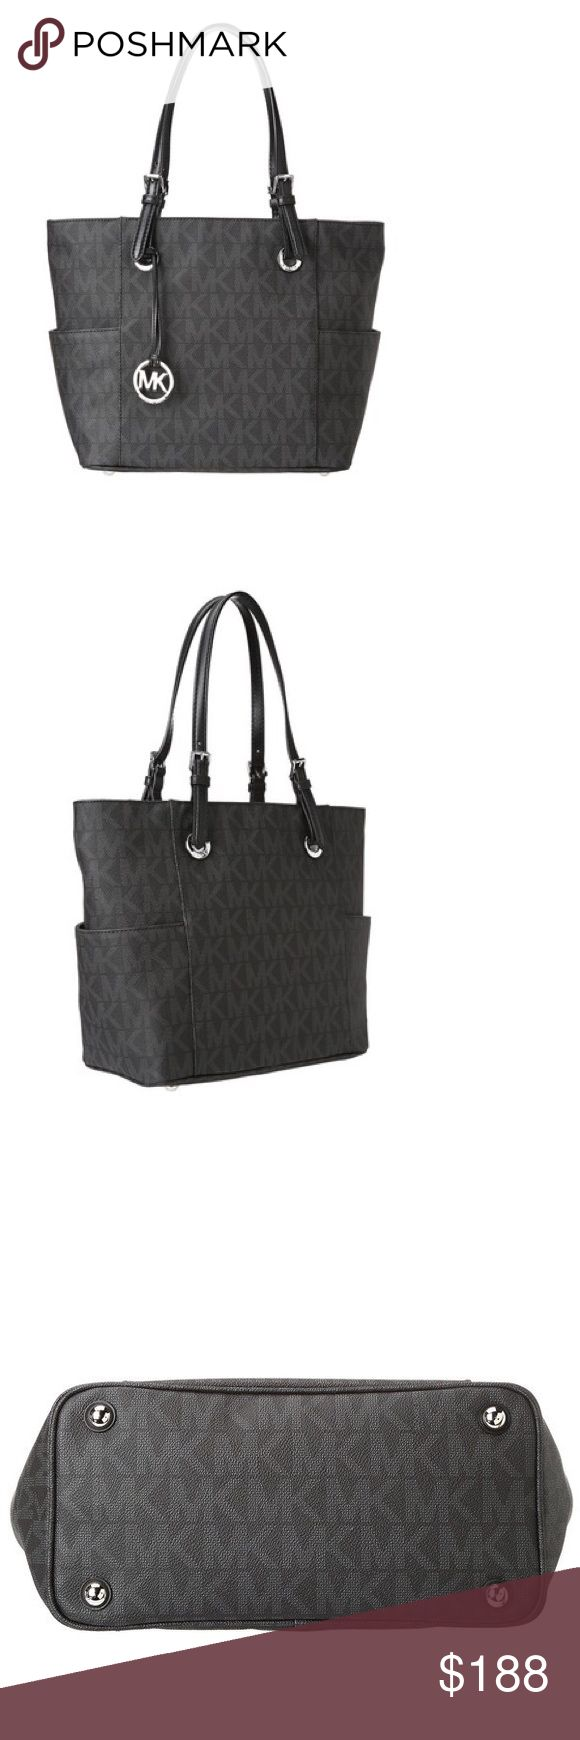 Michael Kors Signature Black Logo/Silver Tote Bag This signaature tote by Michael Kors features a monogrammed exterior in black, accented by silvertone hardware. The open design completes the look.  Handbag Material: PVC Handbag Color: Black Main Closure Type: None Hardware: Silvertone Handles: Double top Dimensions: 11 inches high x 16 inches wide x 5 inches deep Michael Kors Bags Totes